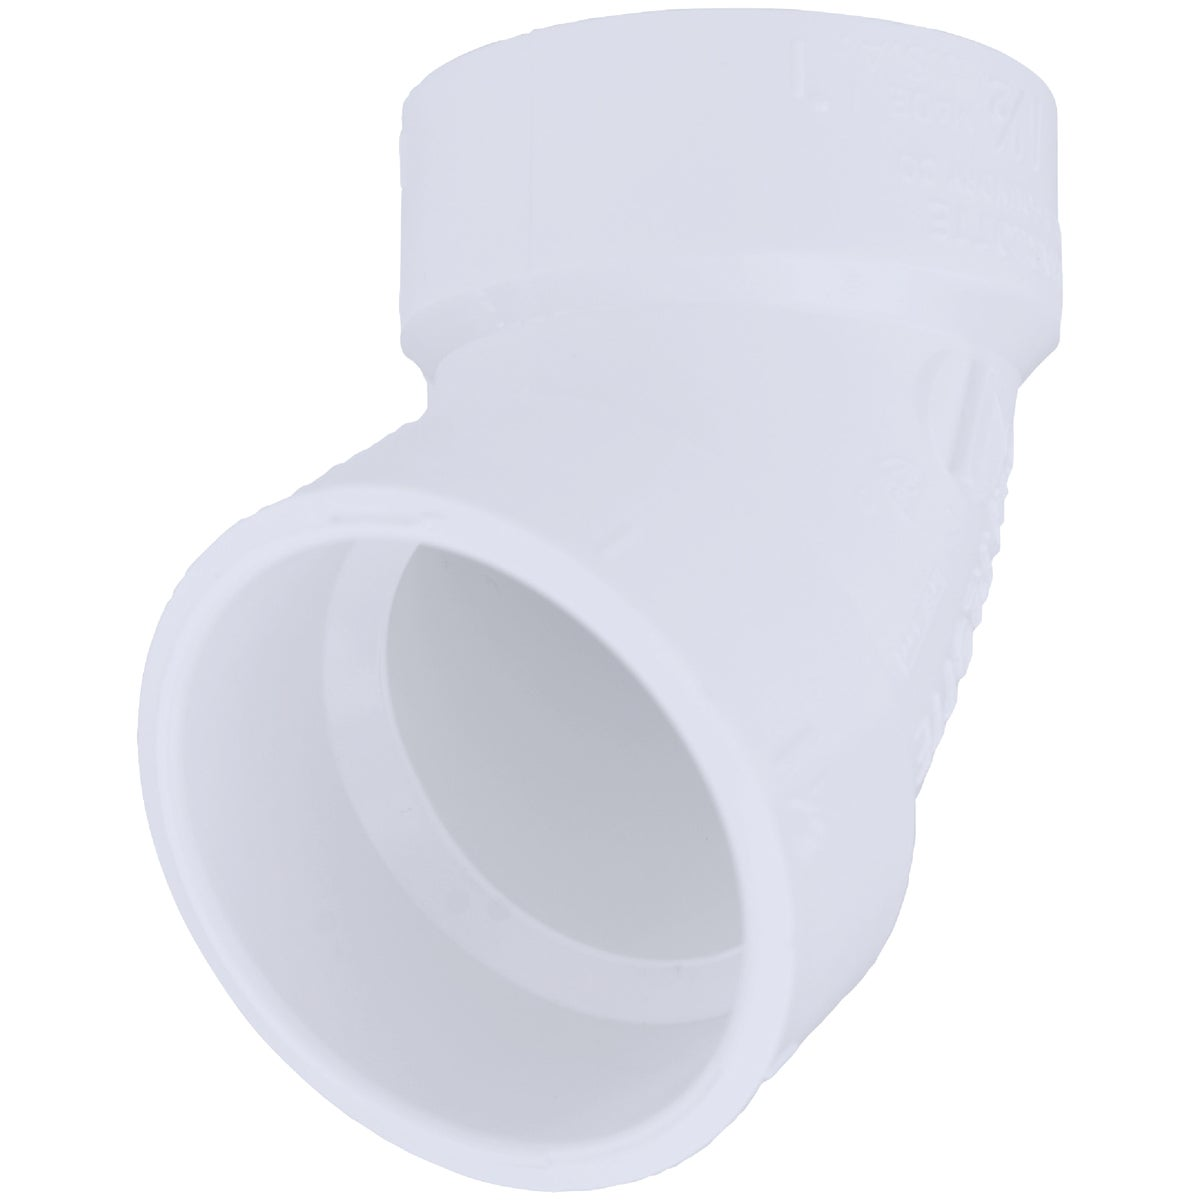 "1-1/2"" 60D PVC-DWV ELBOW - 70915 by Genova Inc  Pvc Dwv"